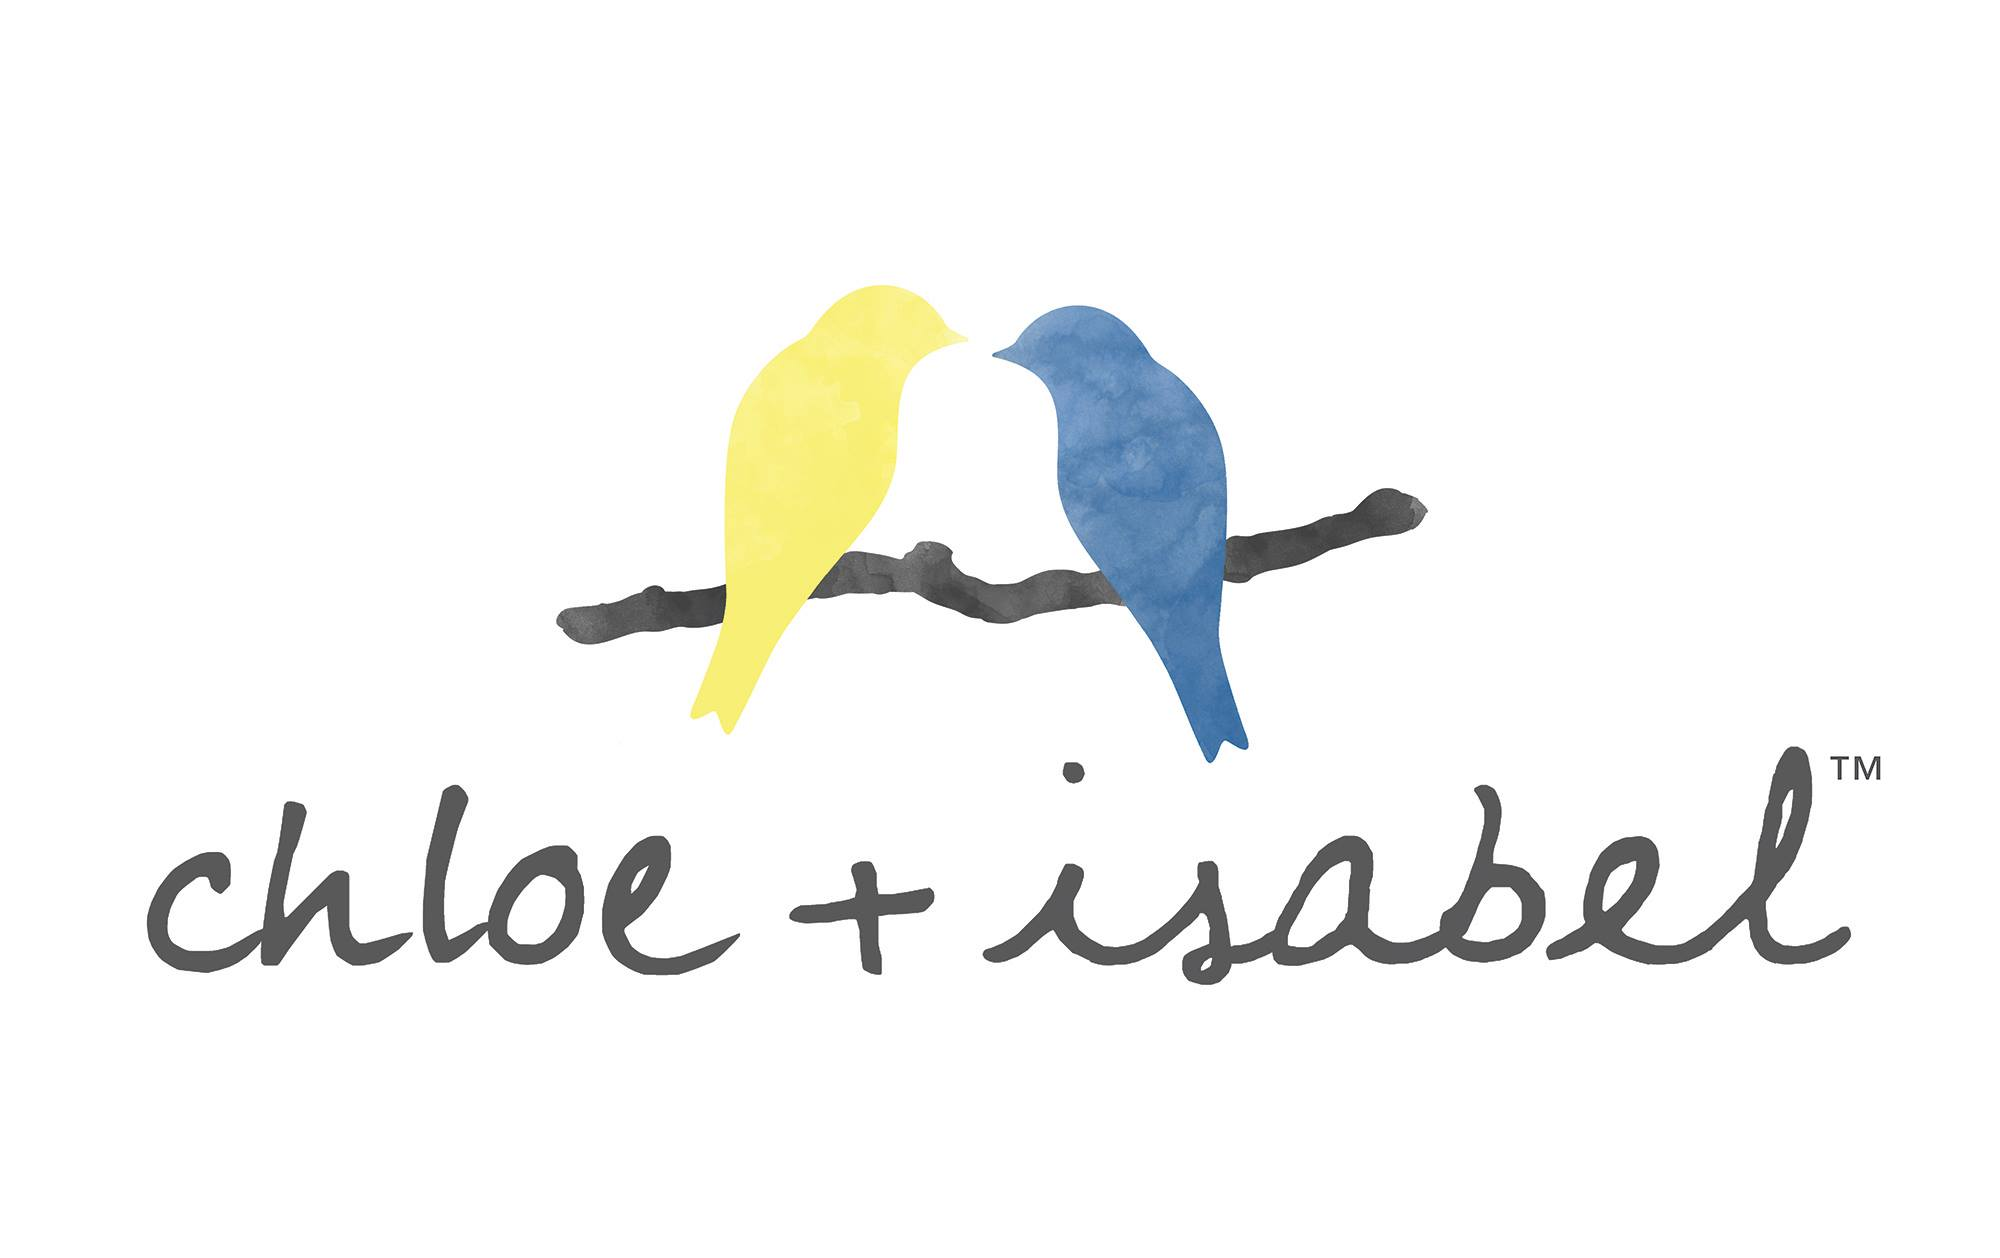 Chloe and isabel - logo